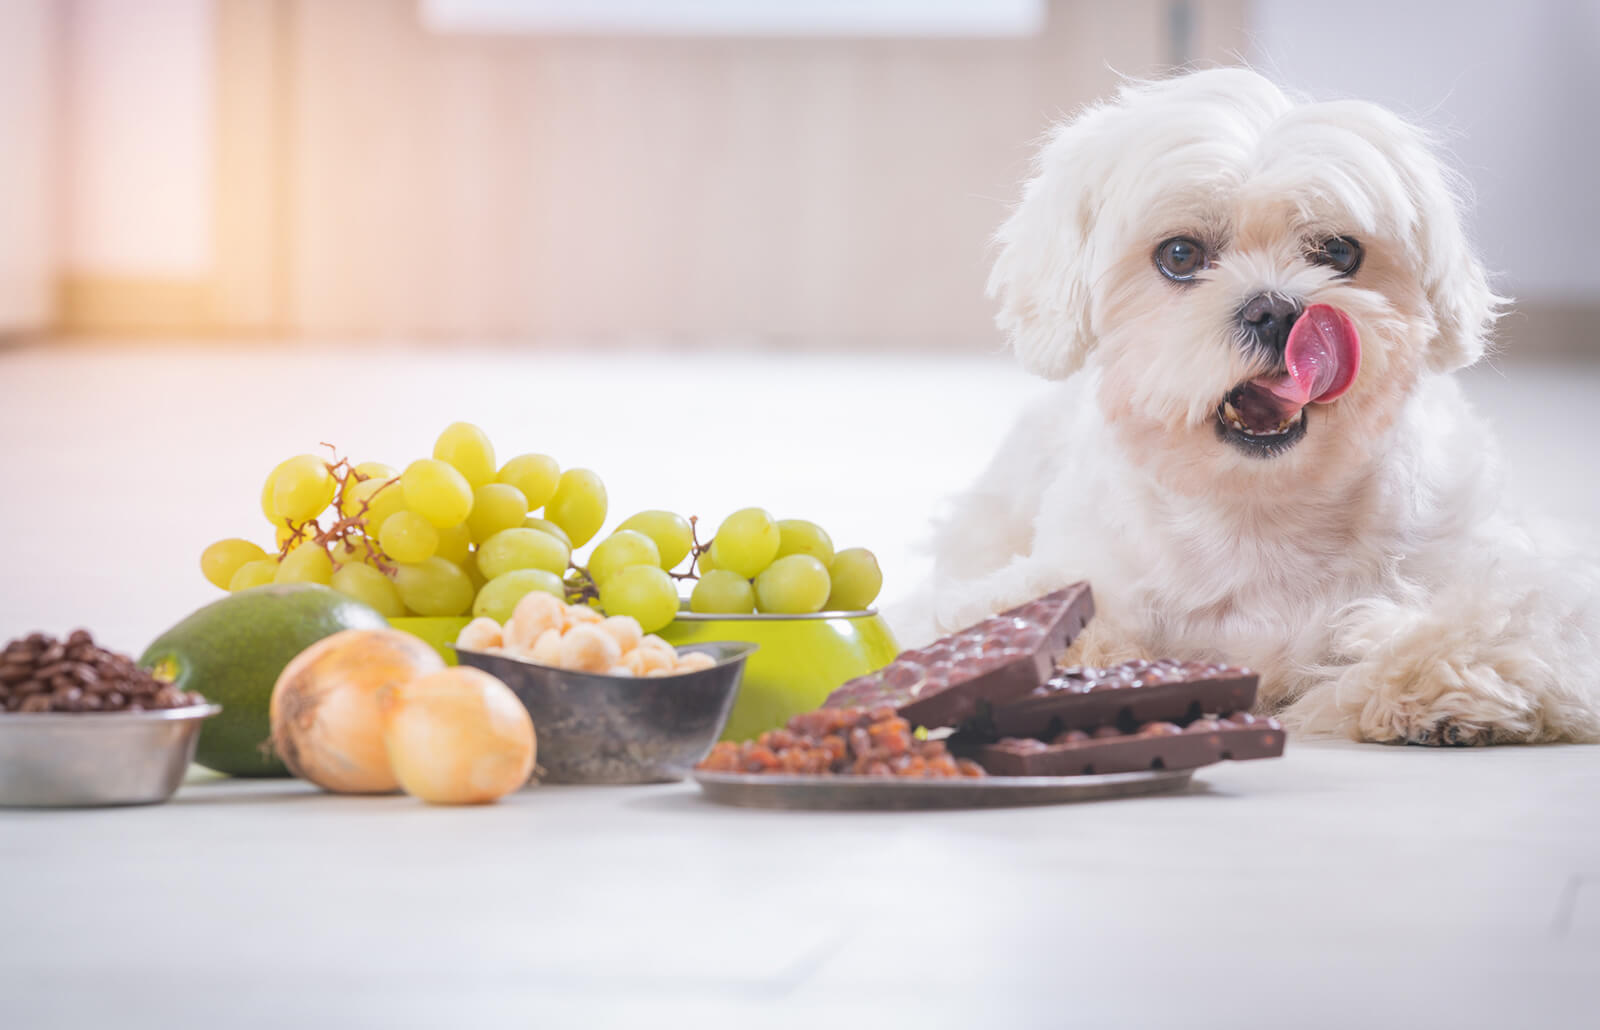 Halloween 2020 Does The Dog Die Can a Dog Die From Eating Chocolate | LoveToKnow